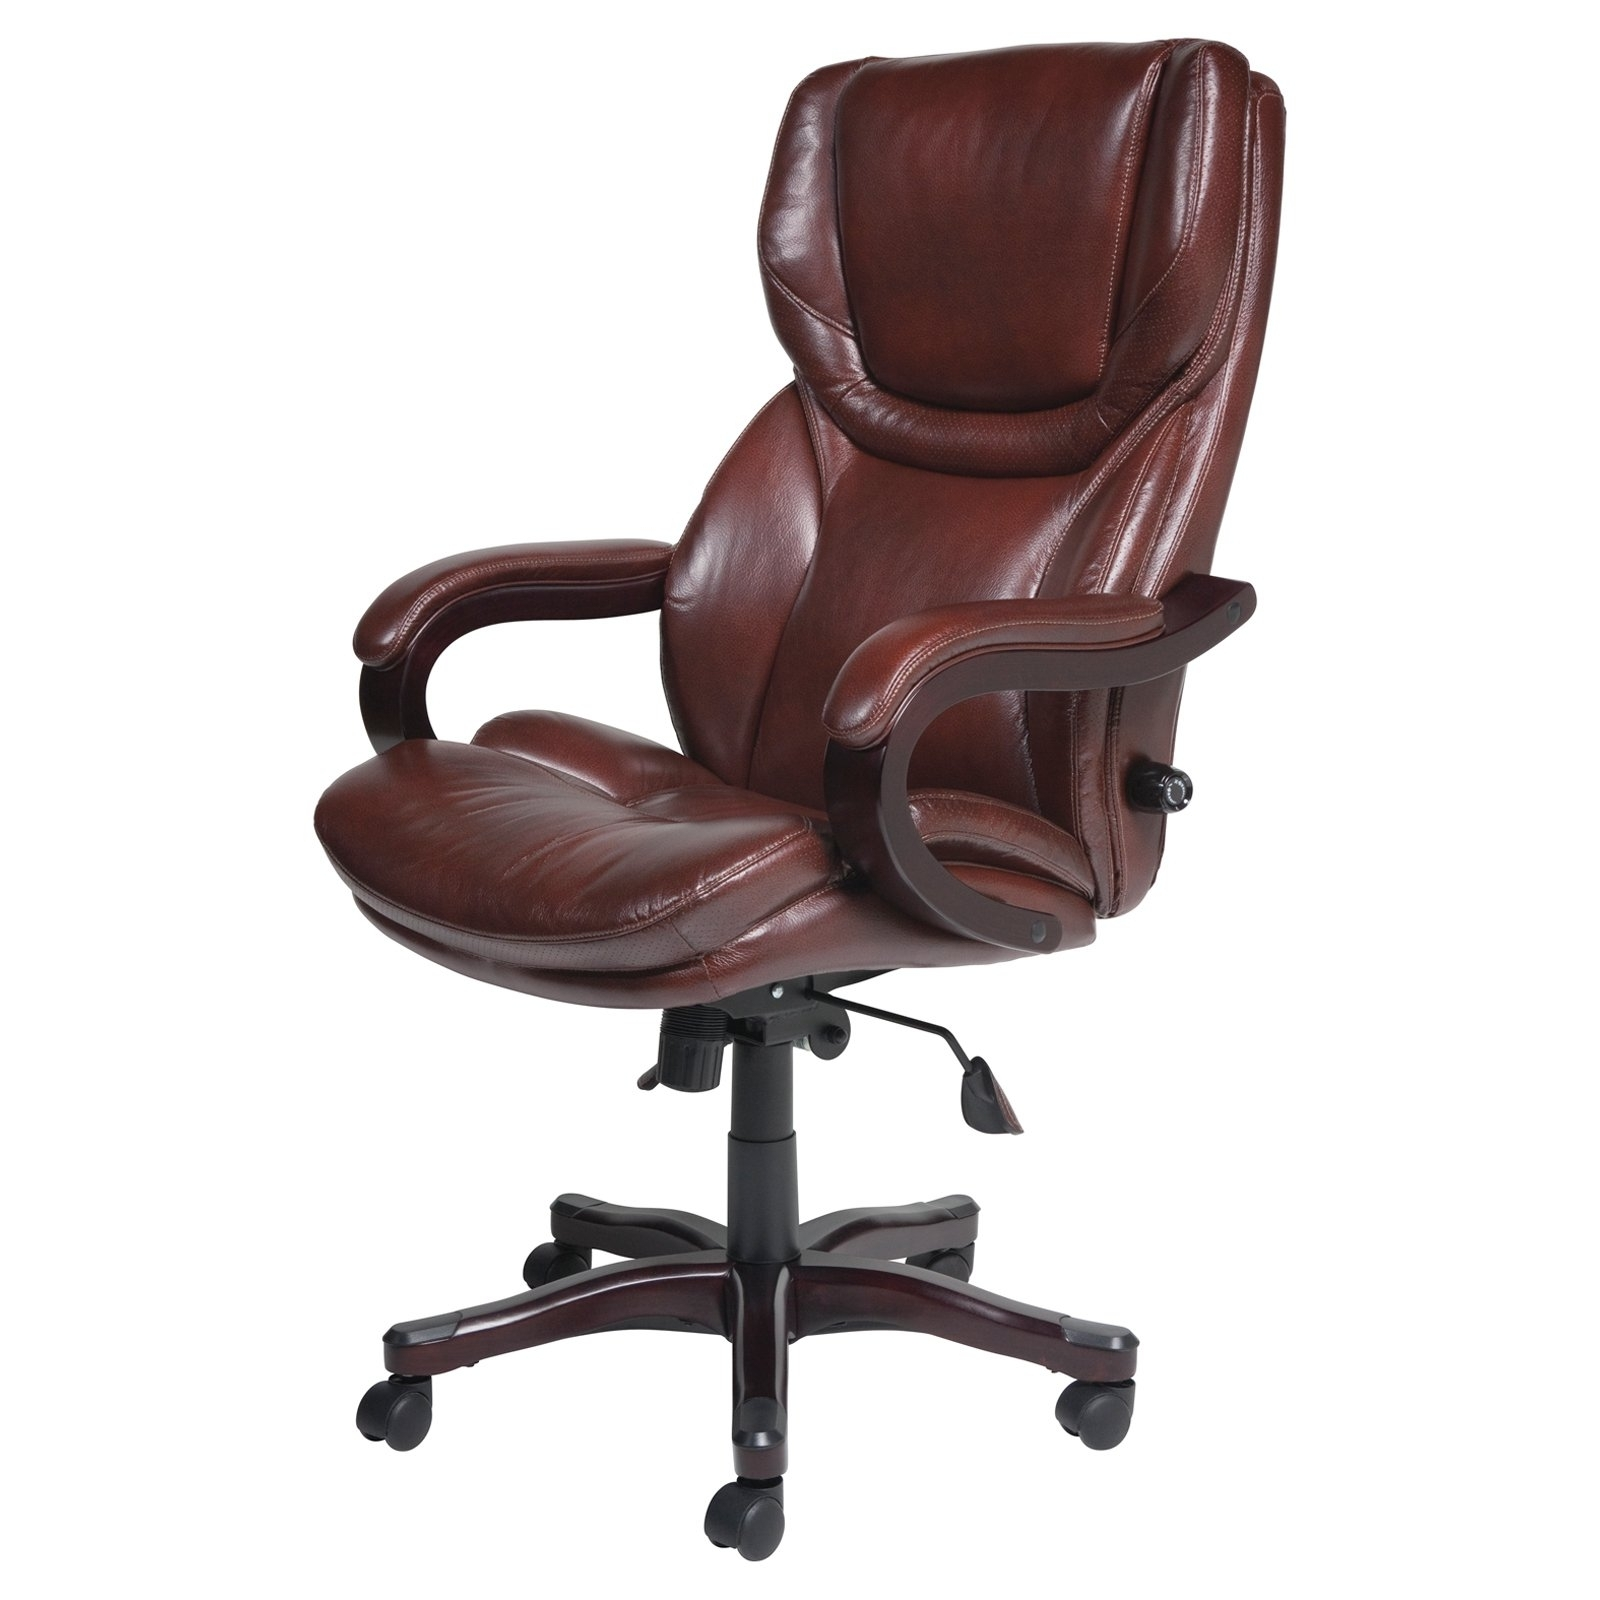 Chair : Ergonomic Black Leather Executive Office Chair Verona For Most Current Unique Executive Office Chairs (View 4 of 20)